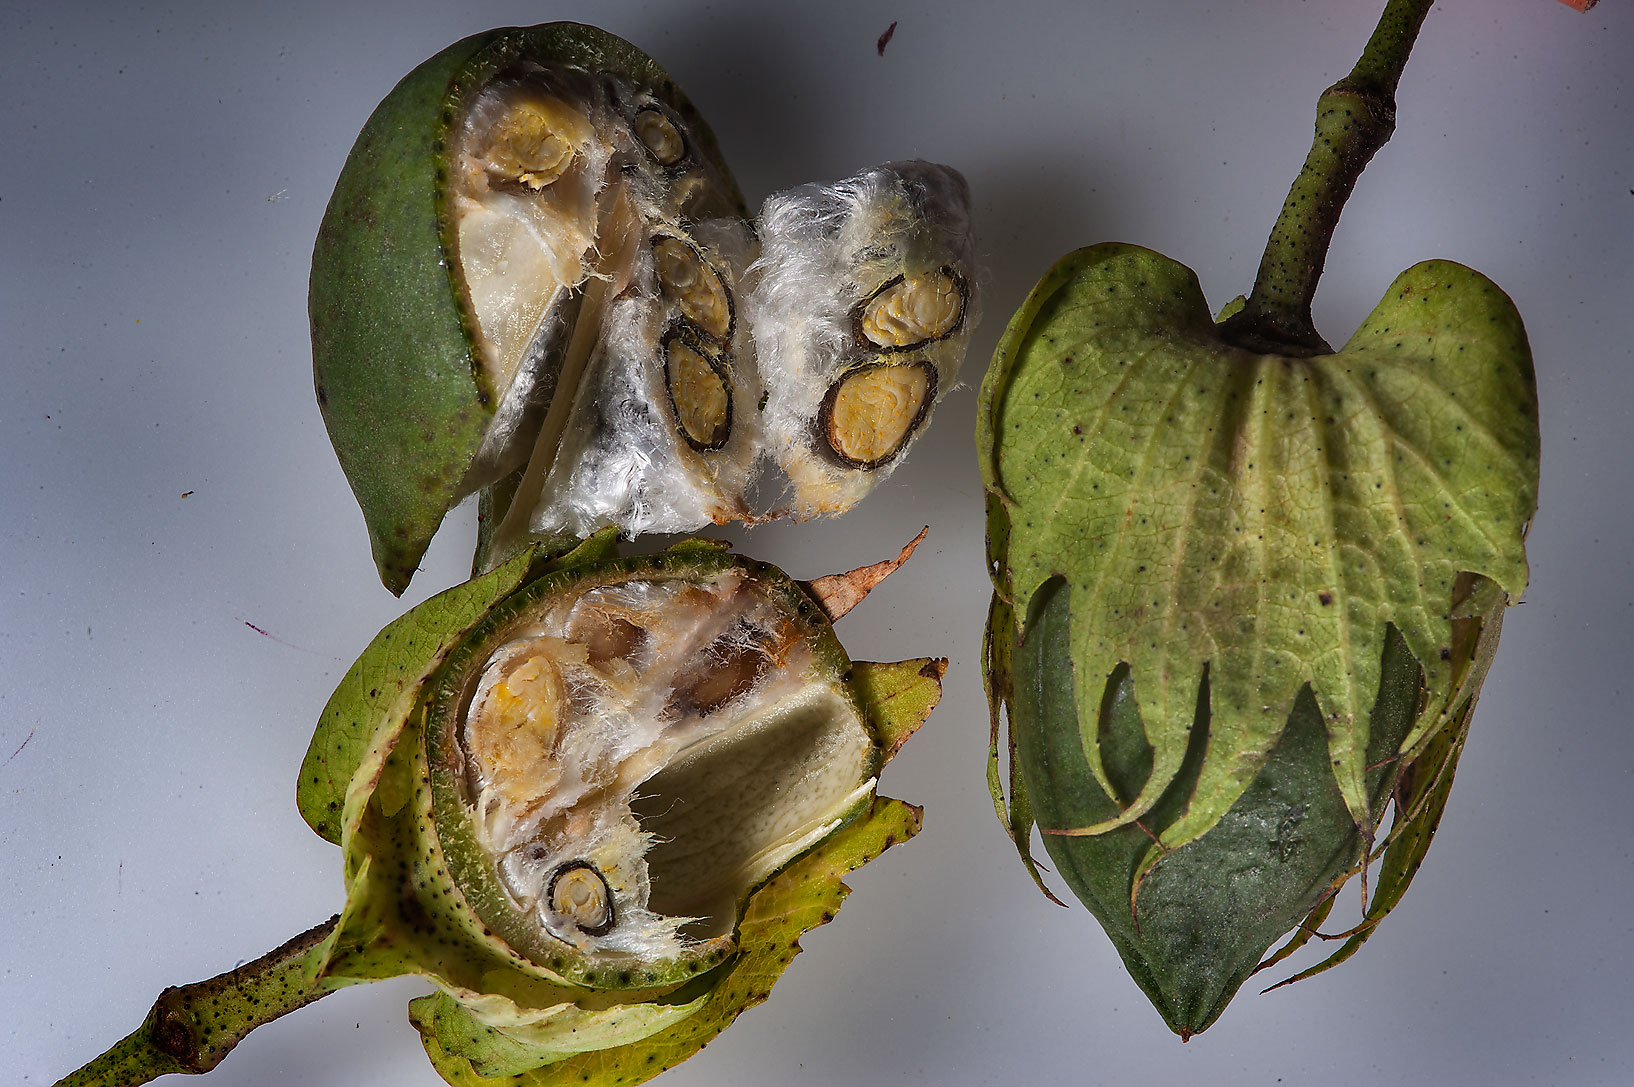 Dissected fruits of wild cotton (Gossypium...St. near West Bay. Doha, Qatar